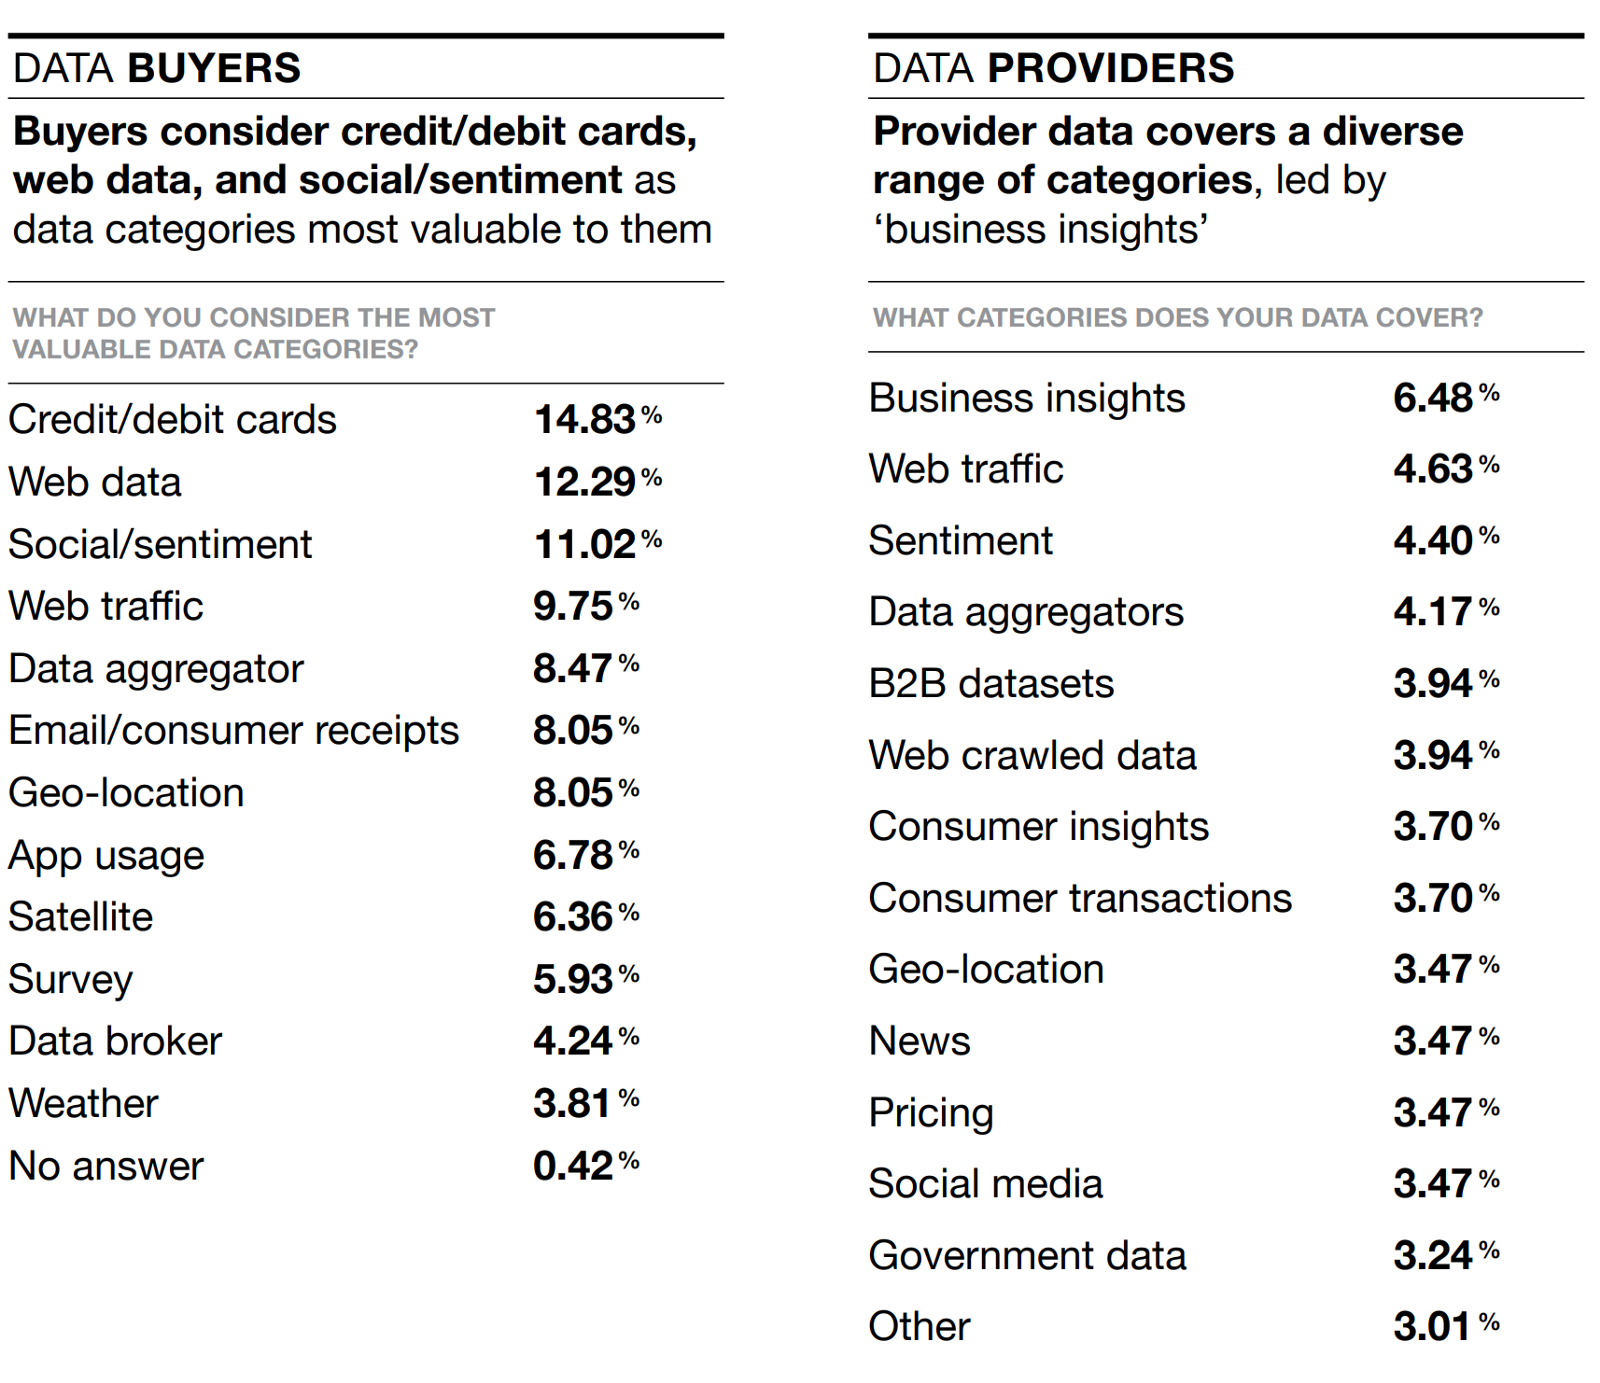 Data extracted from a research report conducted by BattleFin and AlternativeData.org, which compiles responses from 173 respondents made up of 69 alternative-data buyers and 104 data providers who responded to a 2018 survey conducted by BattleFin.